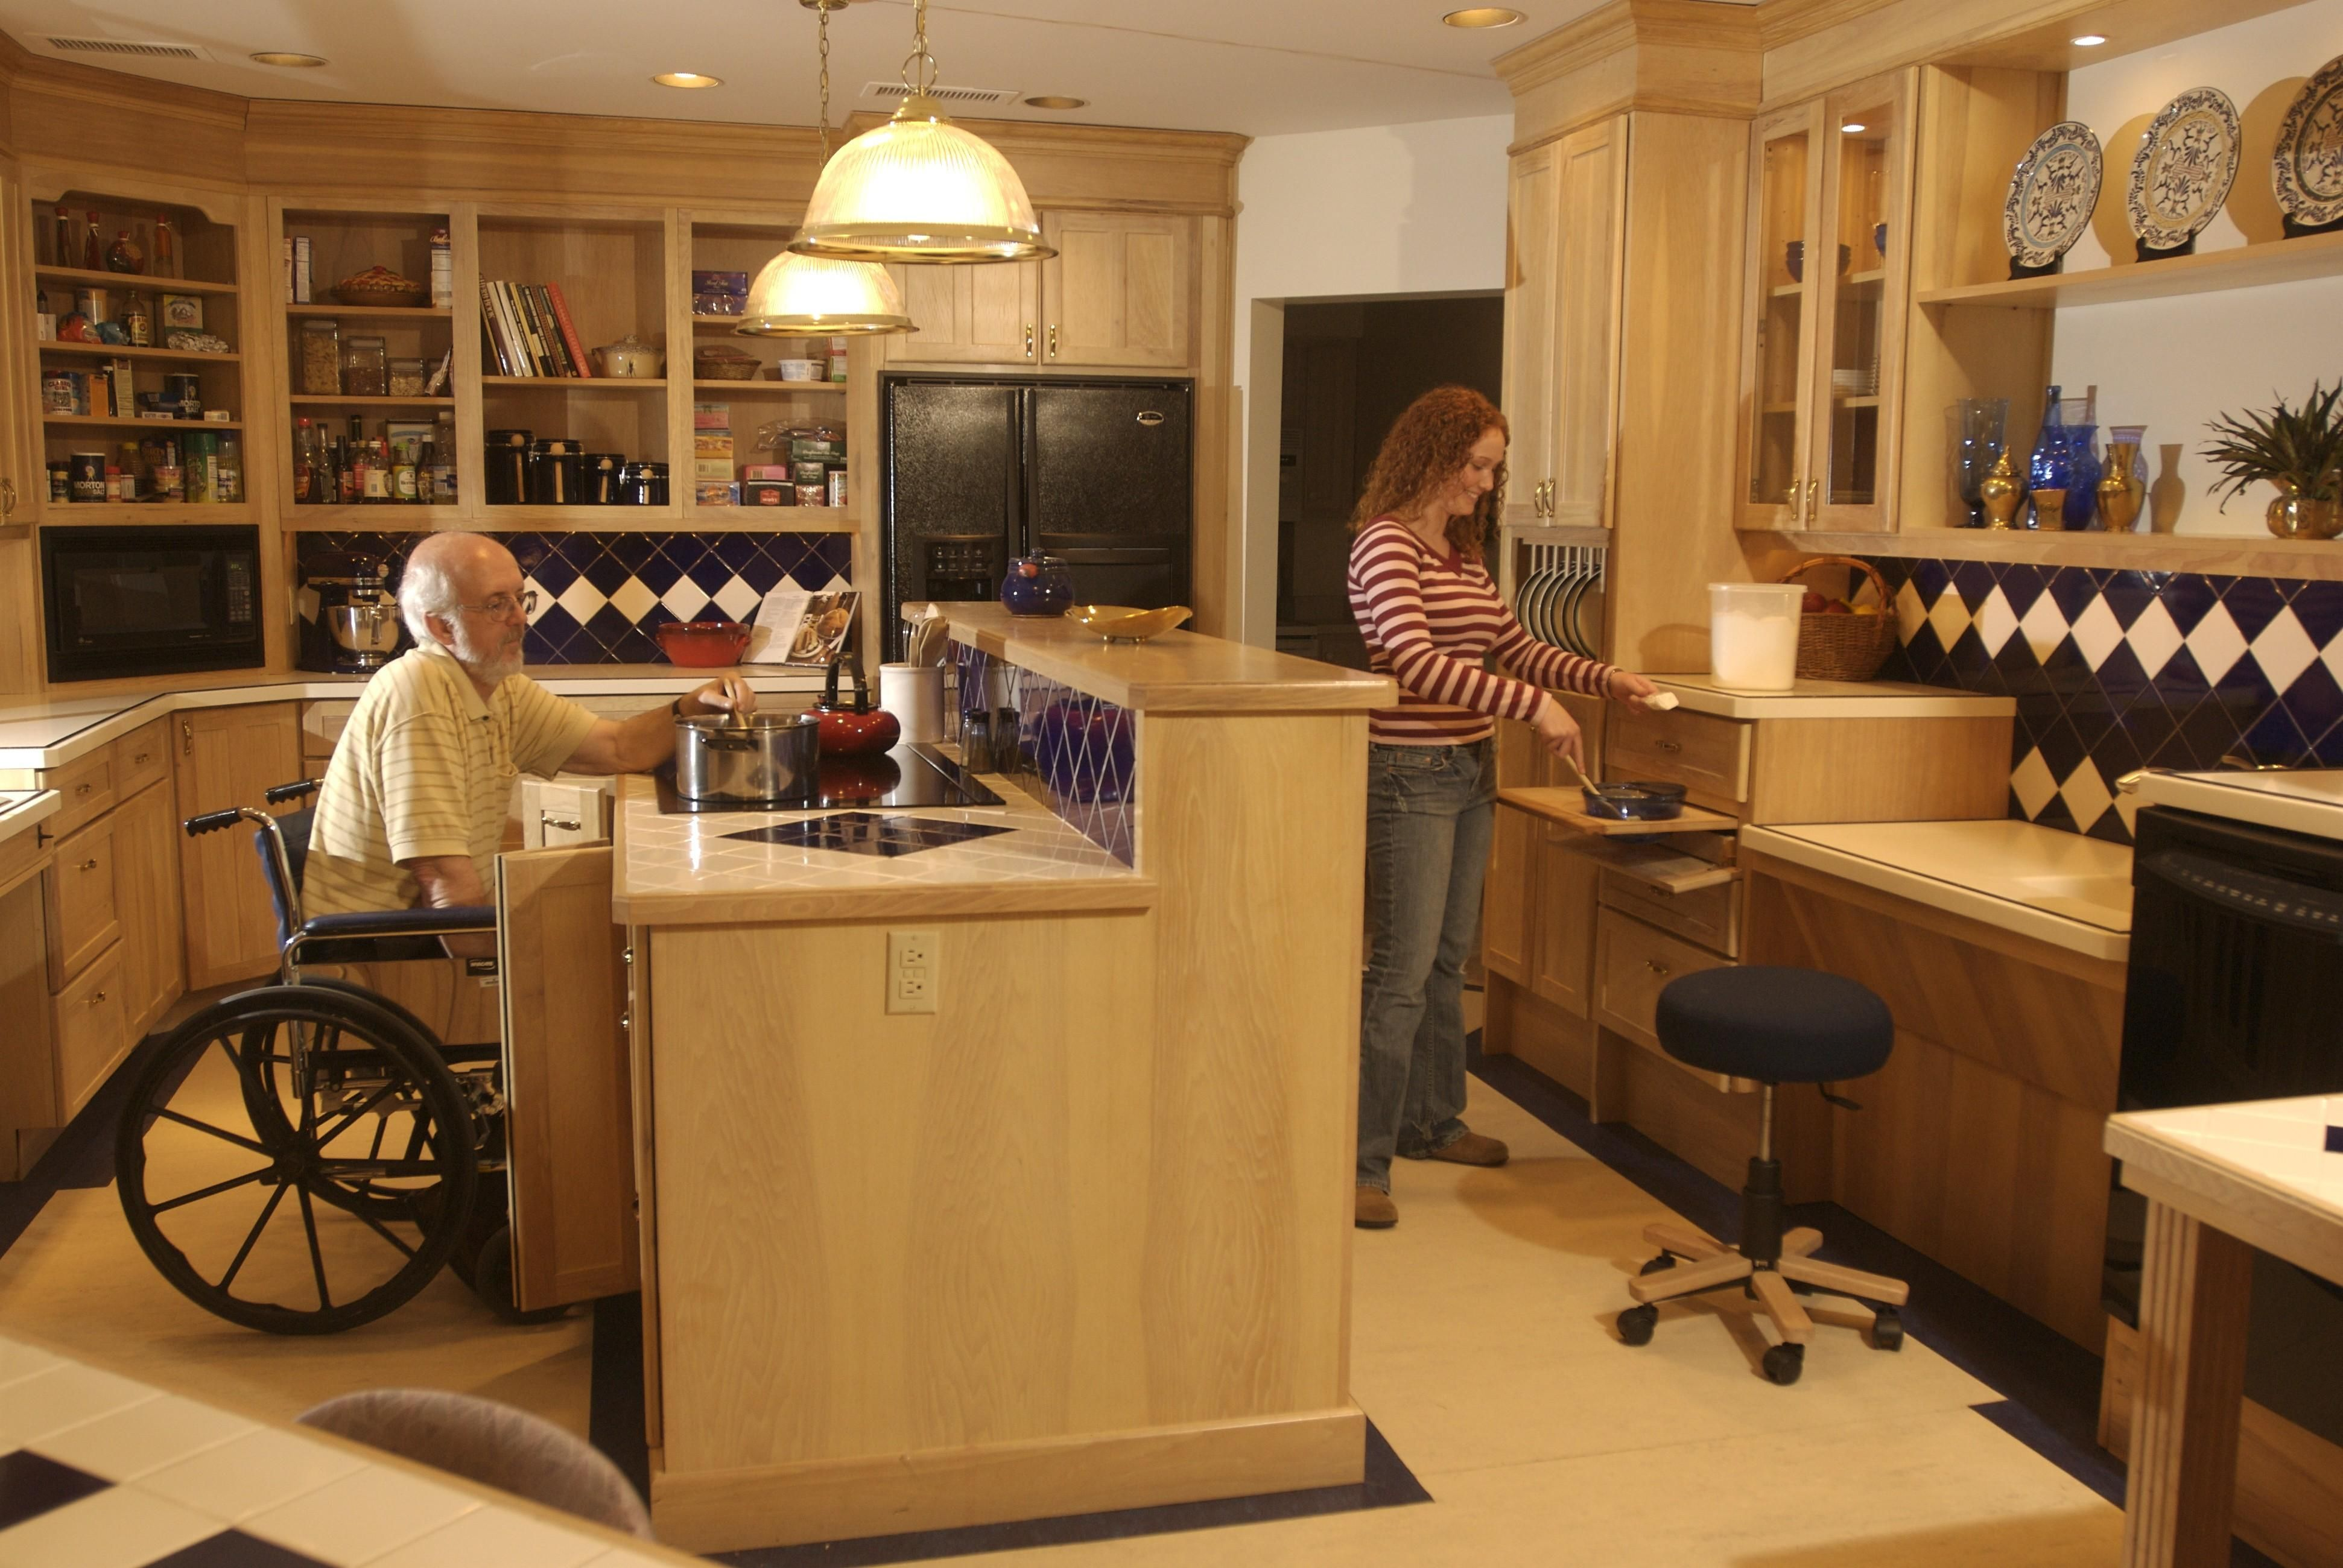 6 Ideas For Elder Friendly Design Features